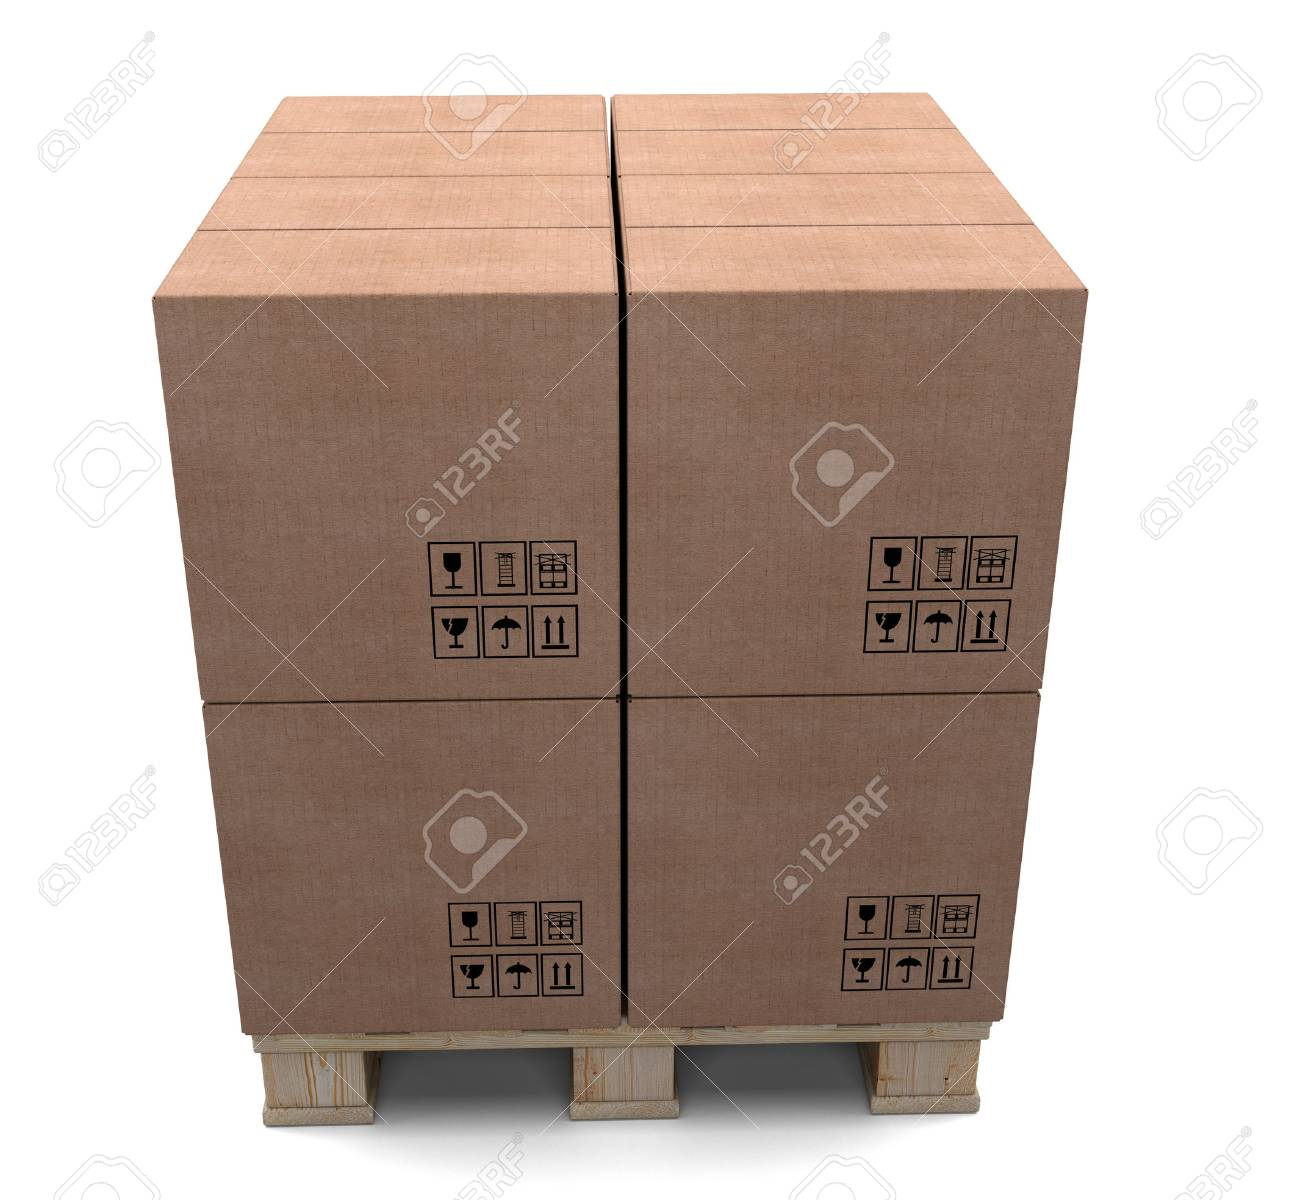 Cardboard boxes on wooden palette isolated on white background Stock Photo - 26010957